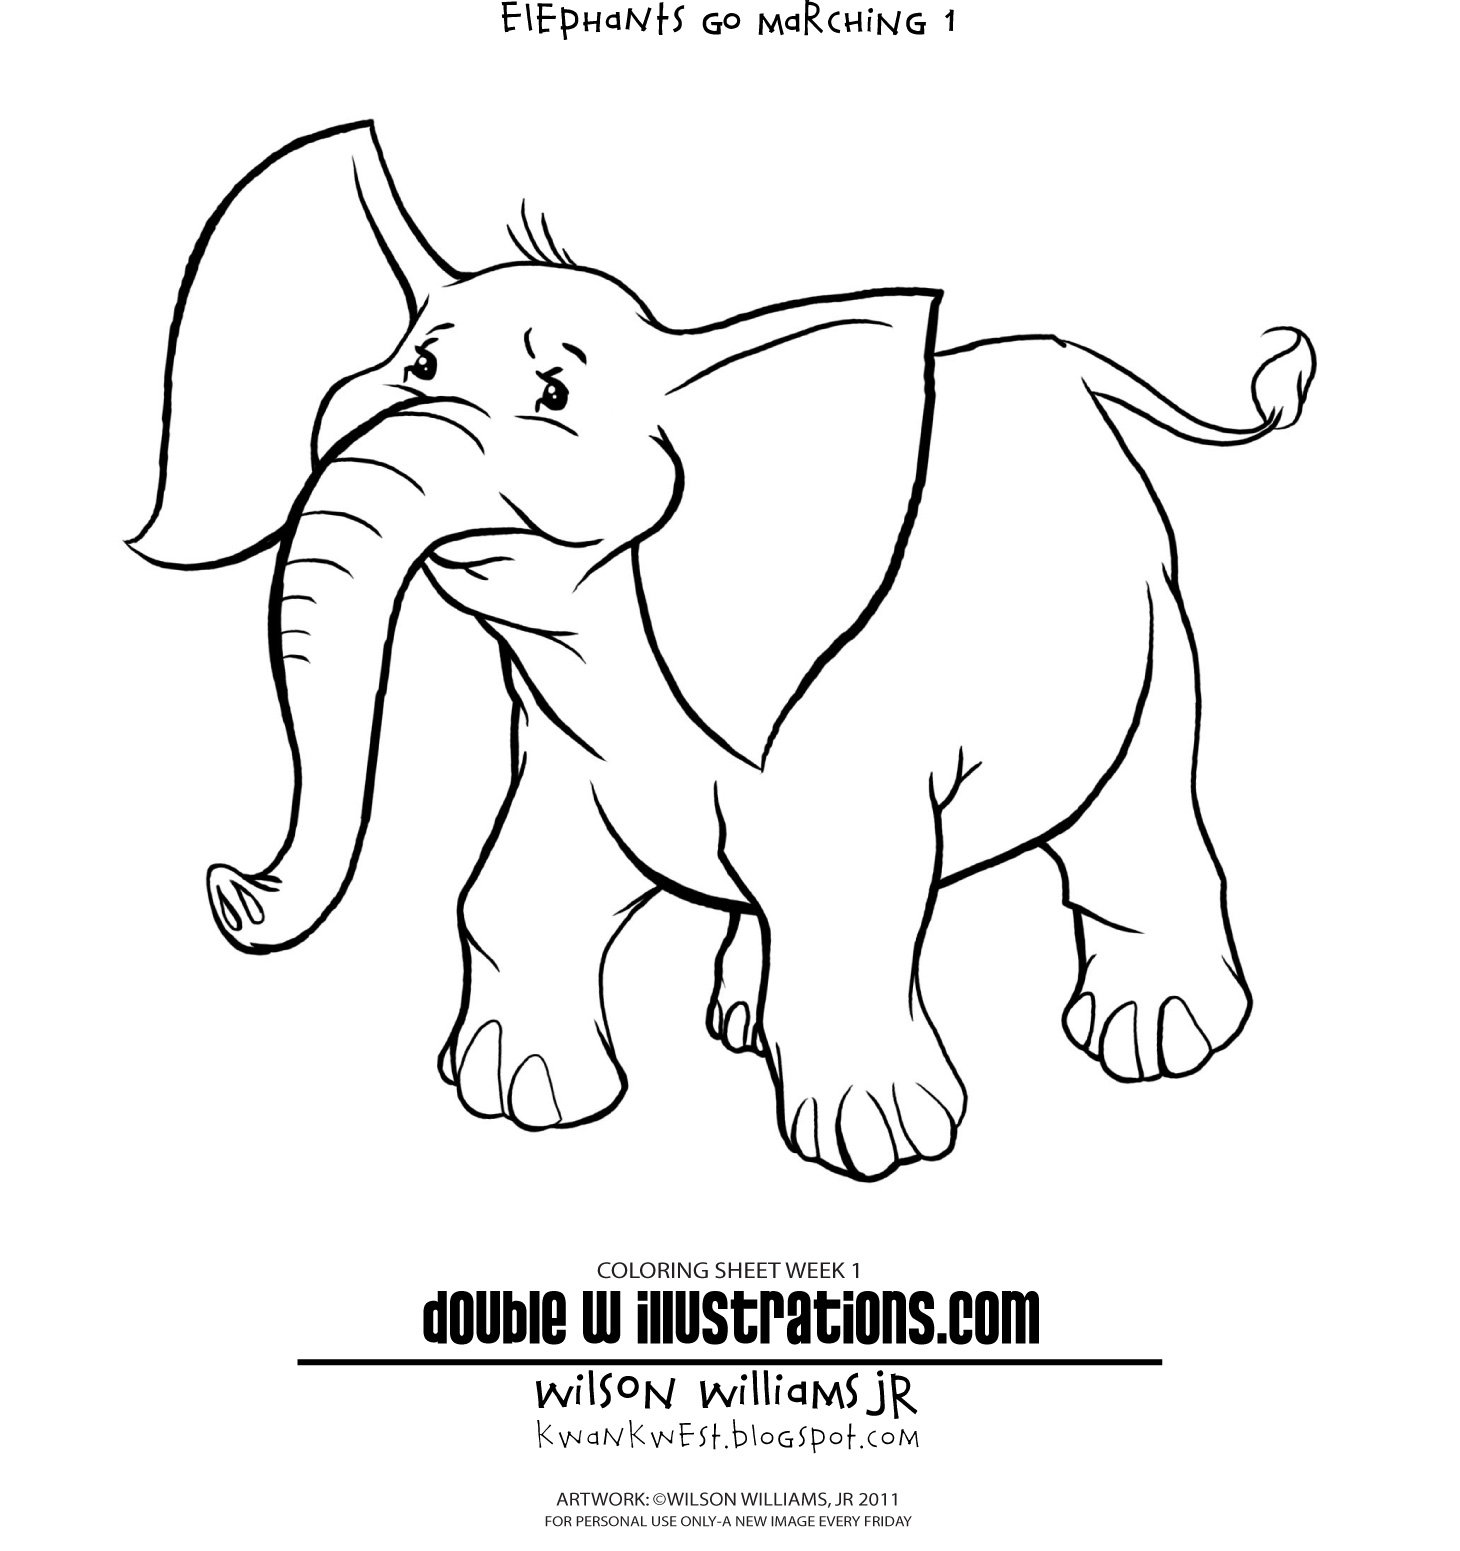 woodrow wilson coloring pages - photo#16